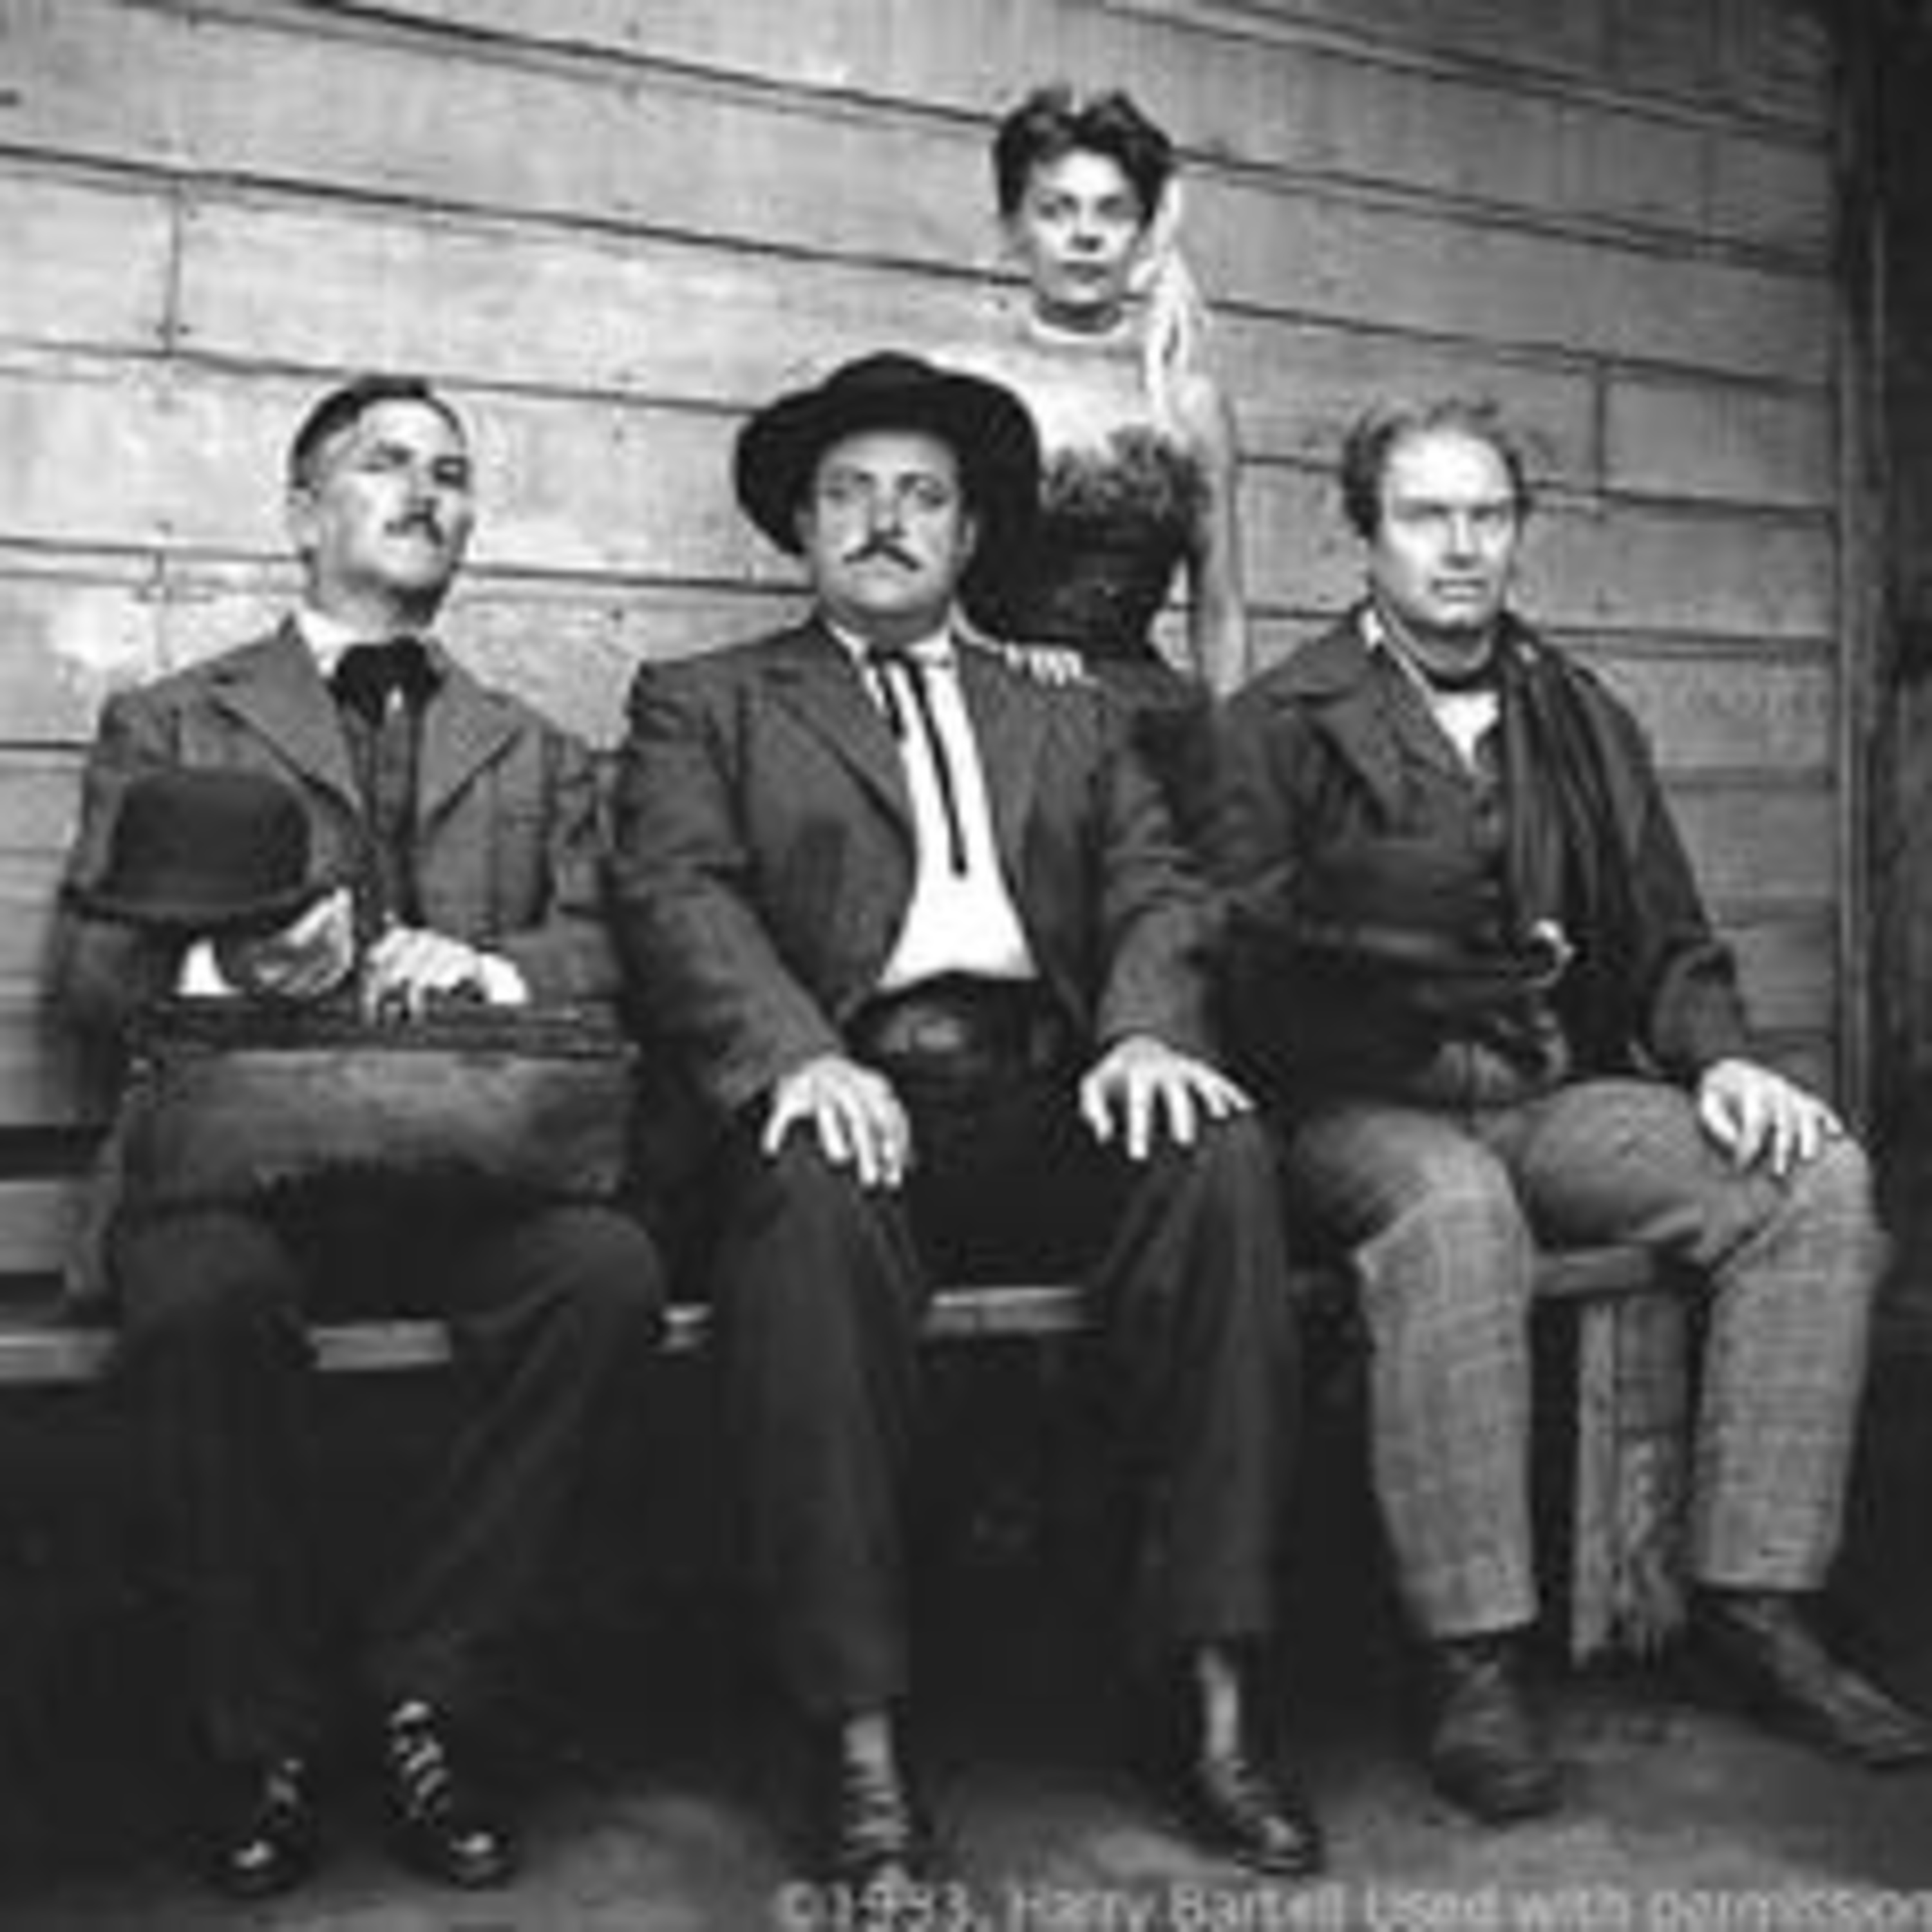 The Gunsmoke Podcast - Print Asper - Fall Semester - Radio's Last Great Dramatic Series - Episodes 57 and 58